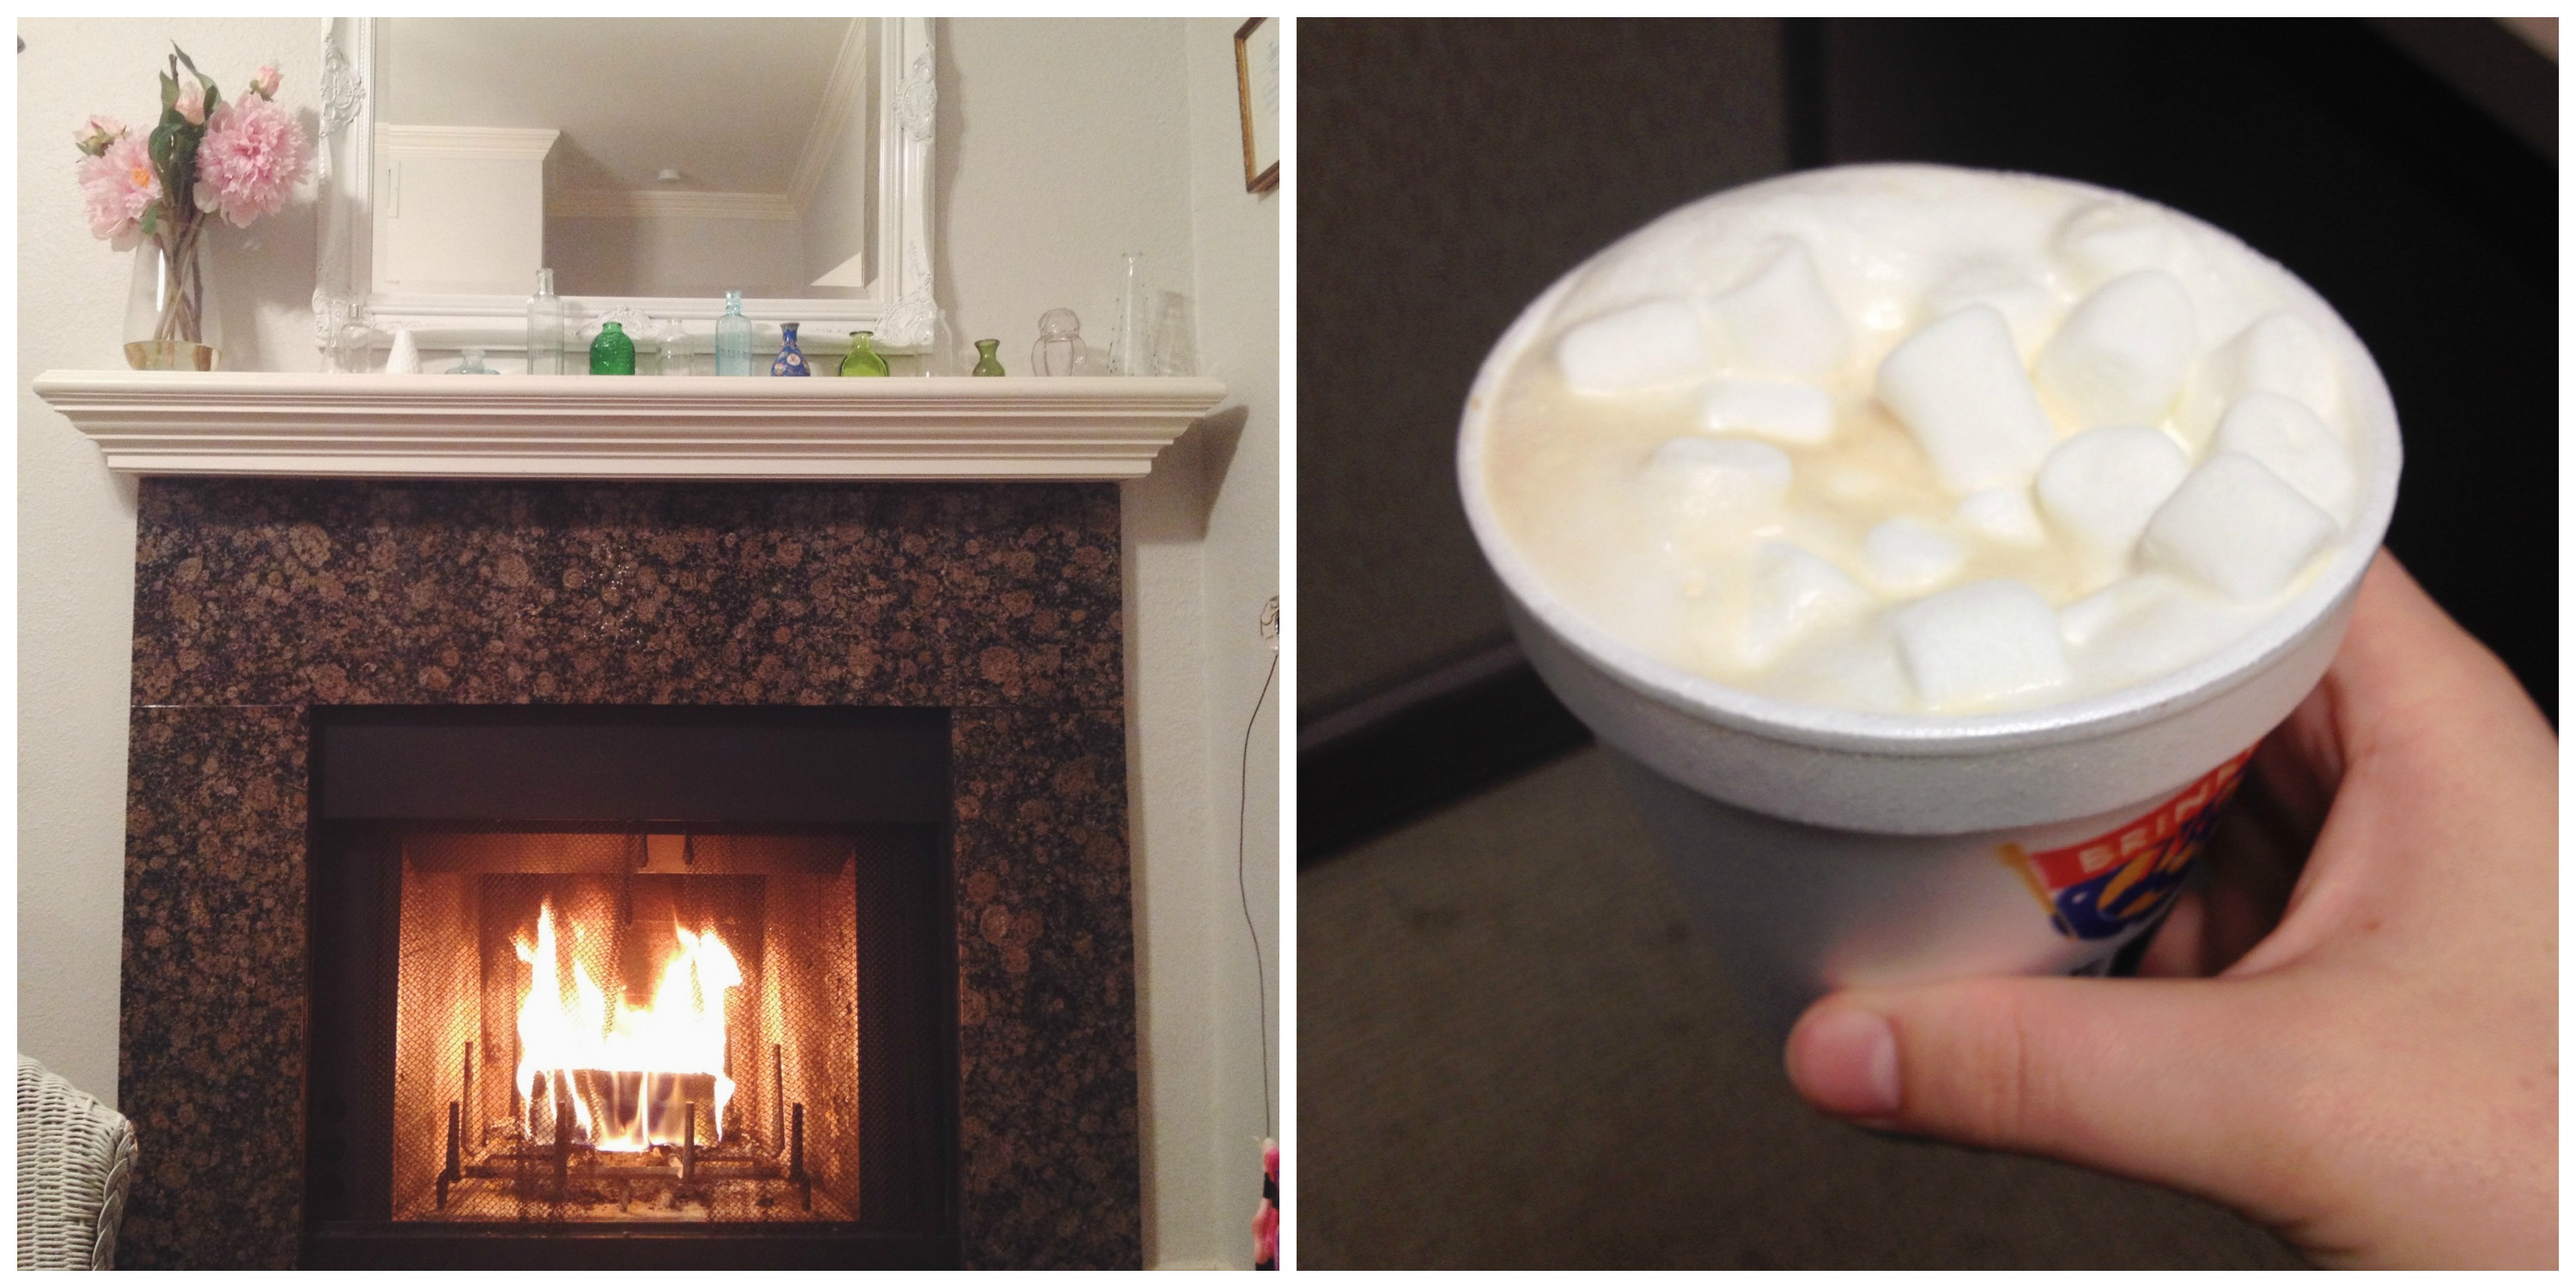 Fireplace & Hot Cocoa